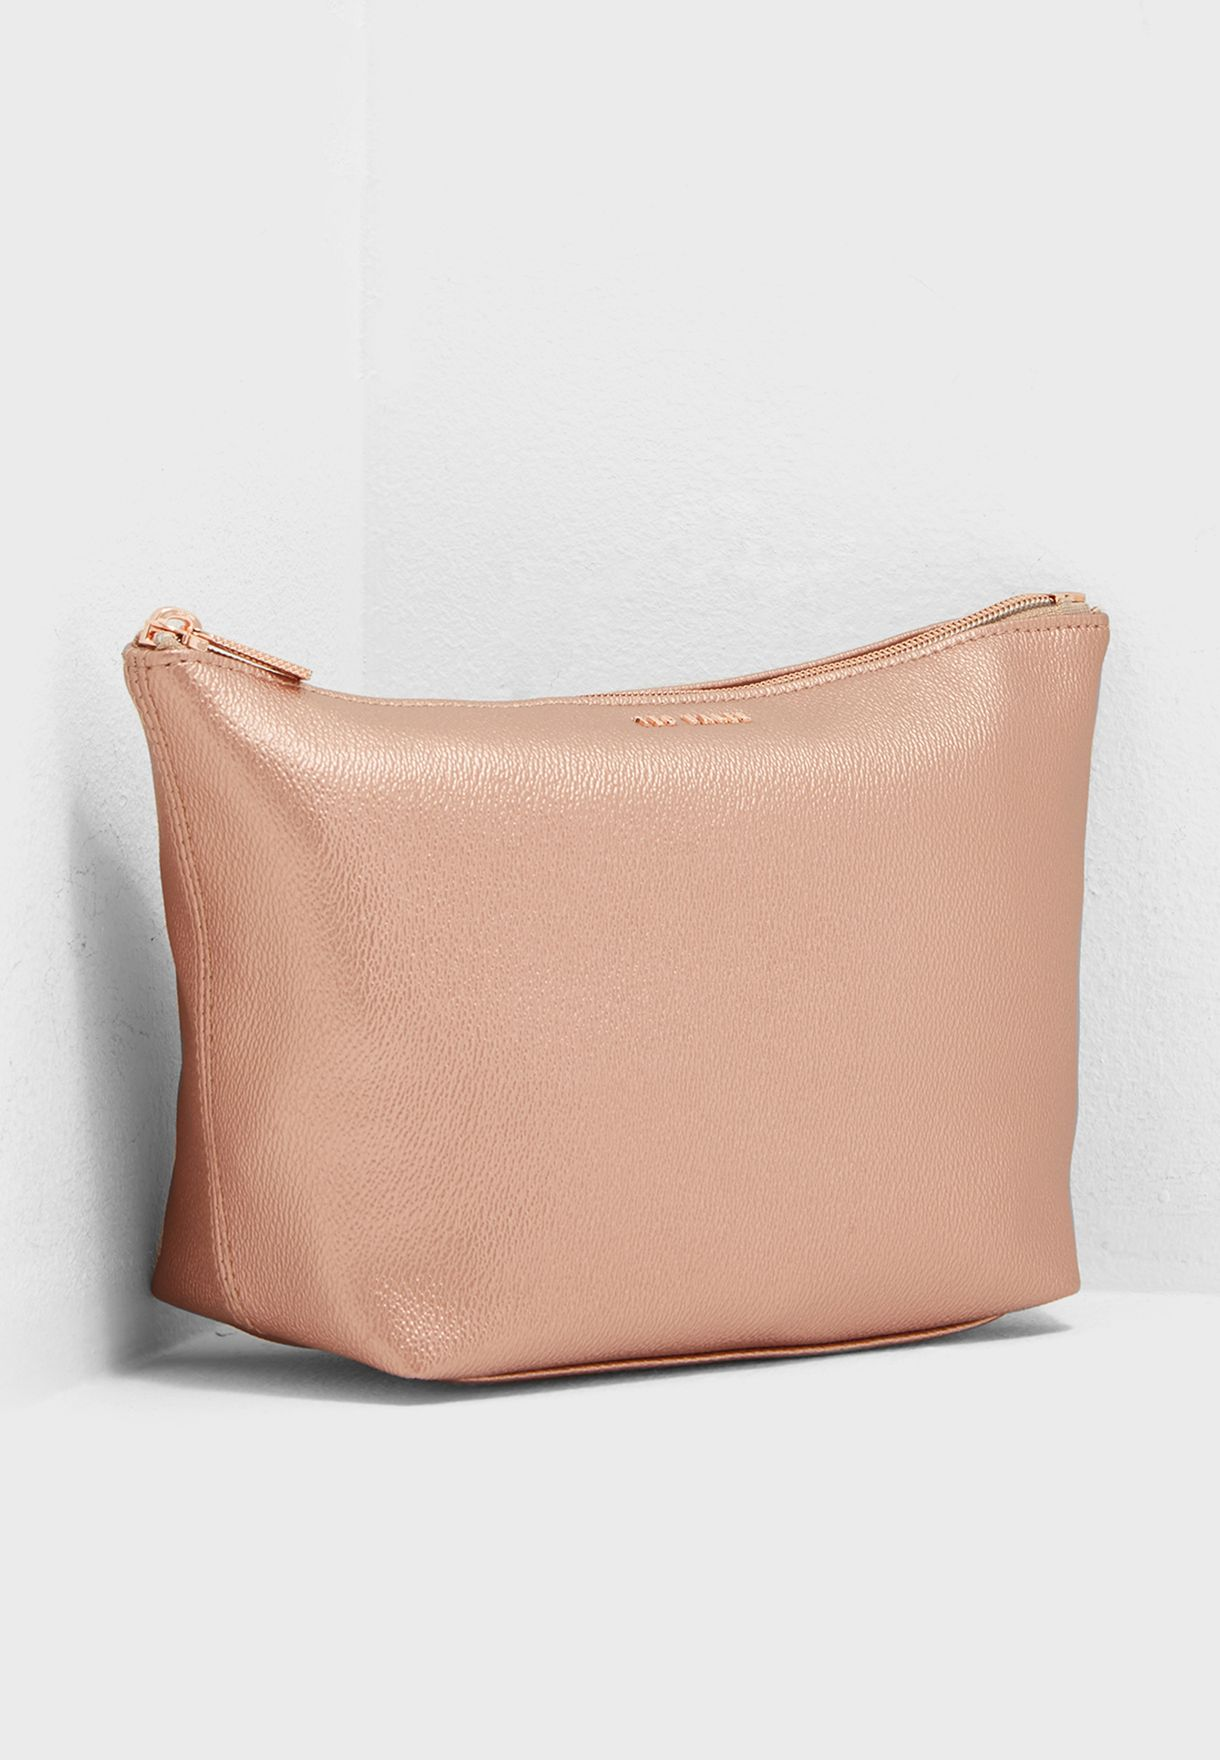 b6ccf93abb Shop Ted baker gold Grainy Wash Bag 141098 for Women in UAE ...